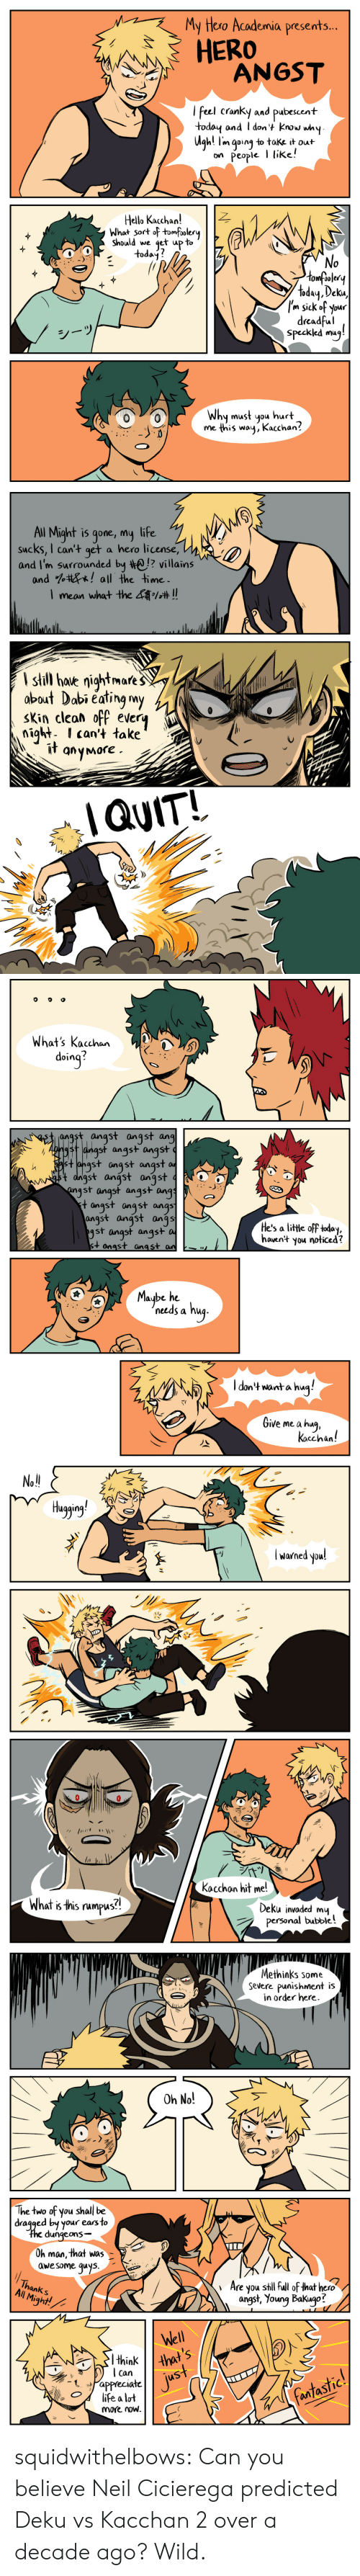 life sucks: yHero Academia presents...  HERO  feel cranky and pabescent  todoq and I don + KnoJ why  Ugh! ln going to take it out  on People I like!  Hello Kacchan!  What sort otomfolery  should we 4et up to  oday  No  omfoojer  today, Deka,  'n sick of your  dreadful  speckled muj!  Why must you hurt  me this way, Kacchan?   All Might is gone, my life  sucks, I can't get a hero license,  and I'm surrounded by ? villains  and % all the time.  mean what the 4  ,# !!  I still haie nightmare  obout Dabi éating my  sKin clean off every  night I can't take  it gnyMore  QUIT!   what's Kachen  doinq?  angst angst ang  gst angst angst  ahgst angst angst  t anast anast anast  gst angst angst angs  t angst angst angs  angst angst angs  gst angst angst  +onast anast  He's a litte off today,  havent you noticed?  Maybe he  needs a hu  I don't wana hua!  Give me a hug  Kacchan!   No!  Huggng  l warned youl  :///  钐1)'  Kocchan hit me!  What is this rumpus?1  Deku invaded mu  personal bubble!   Methinks some  Severe punishment is  in order here.  Oh No!  The two of you shal be  dragged by your eas to  du  ngeons-  Oh man, that was  aweSome quys.  Thanks  Al Might!  Are you sthil Full of that hero  angst, Young Bakugo?  Well  thw  uS  Can  tappreciate  life a lot  fantastic.  More noW. squidwithelbows:  Can you believe Neil Cicierega predicted Deku vs Kacchan 2 over a decade ago? Wild.